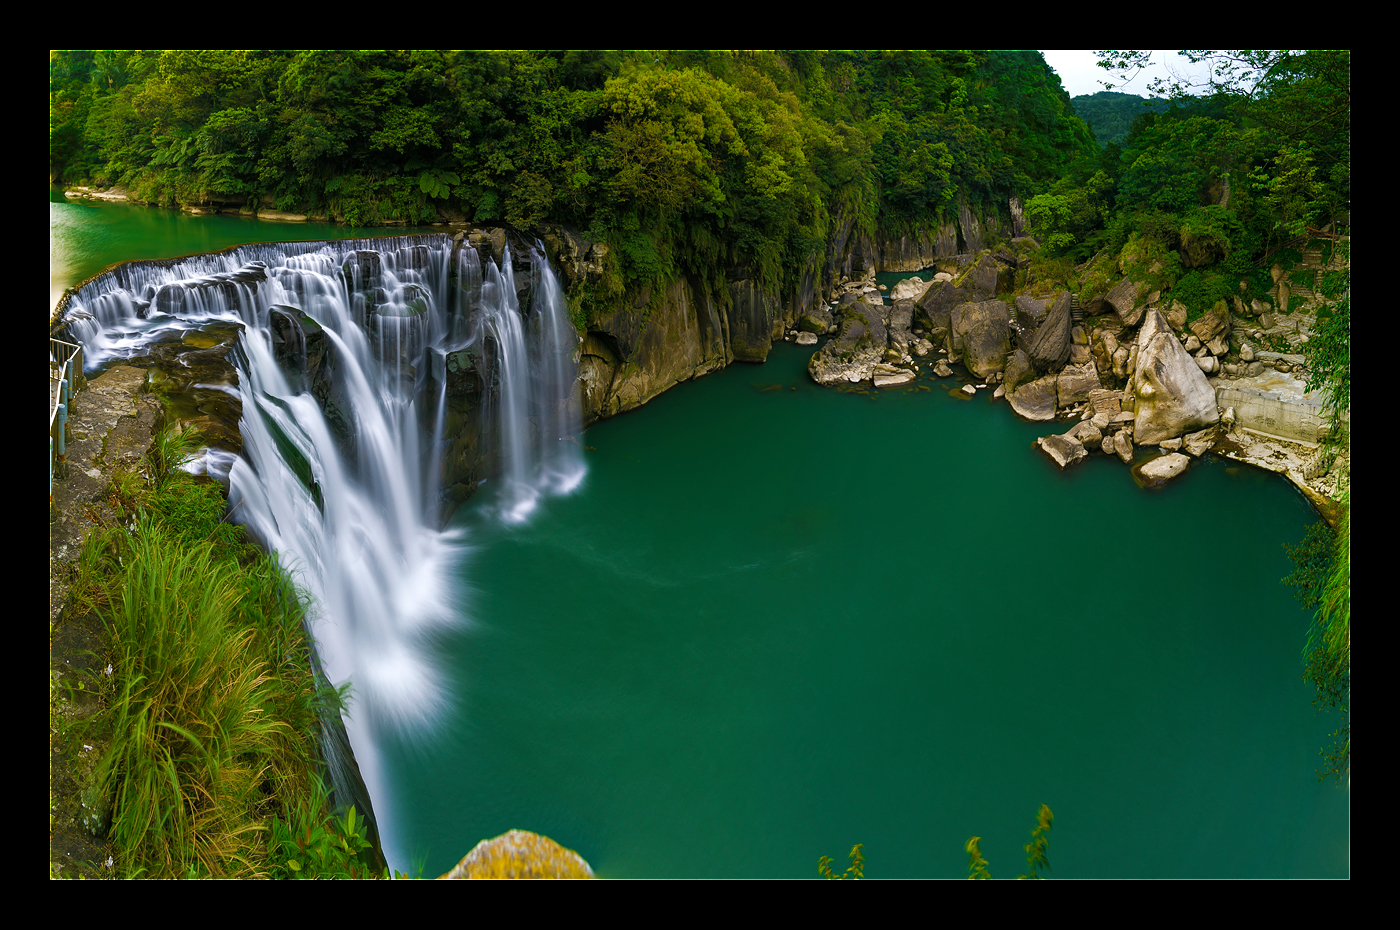 Green Water Hole by WiDoWm4k3r